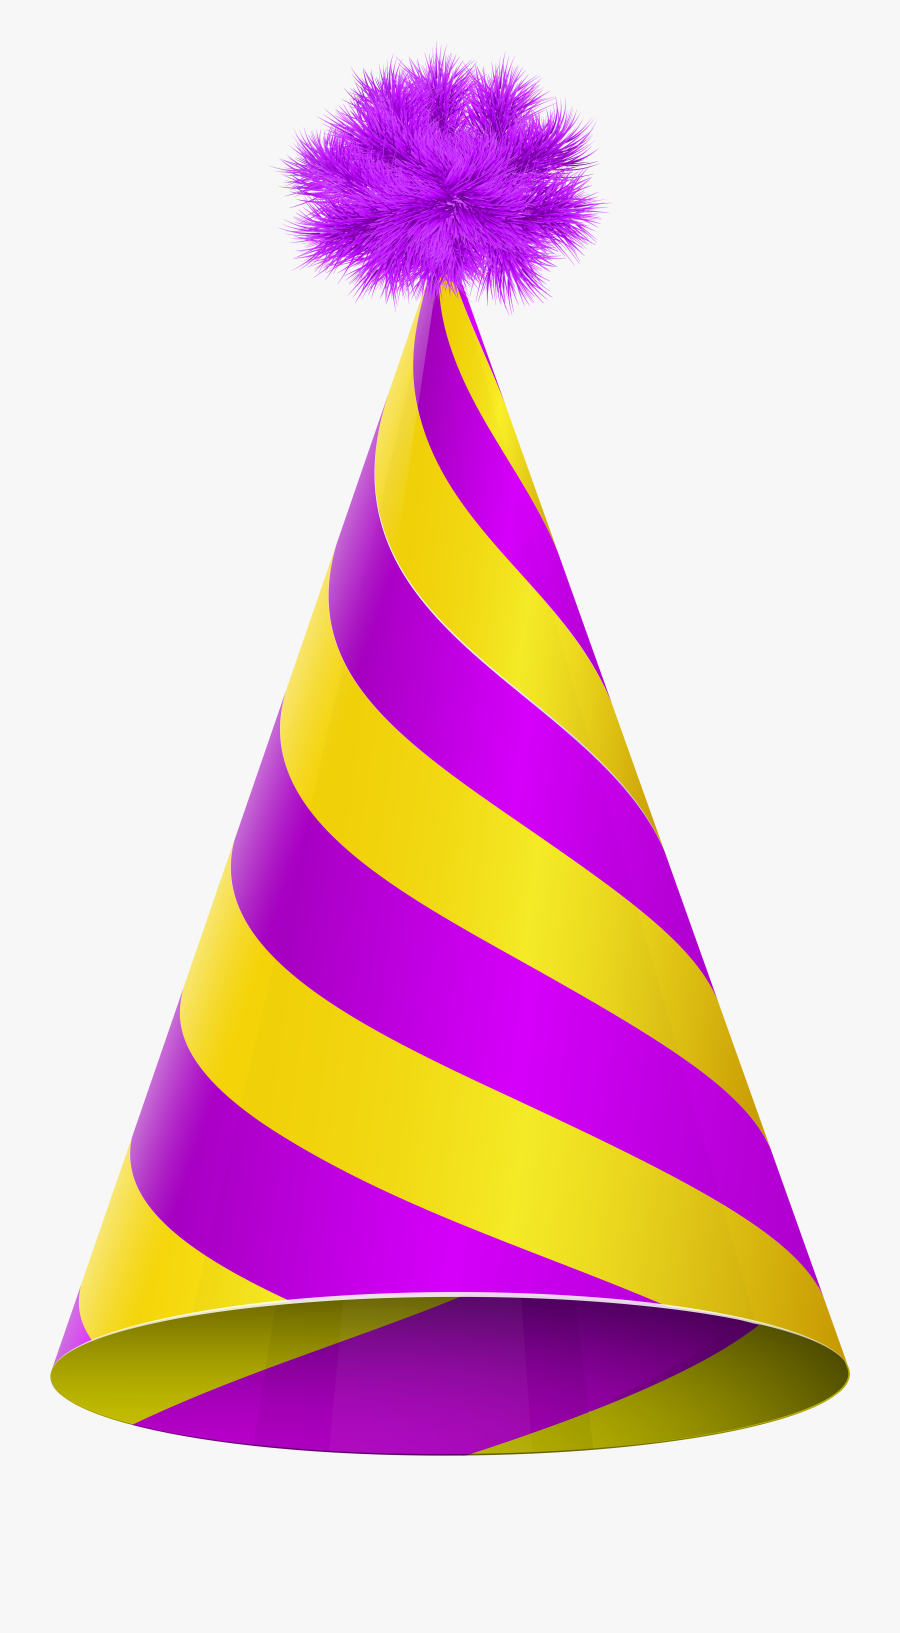 Birthday Hat Transparent Png For Kids - Yellow And Purple Party Hat, Transparent Clipart